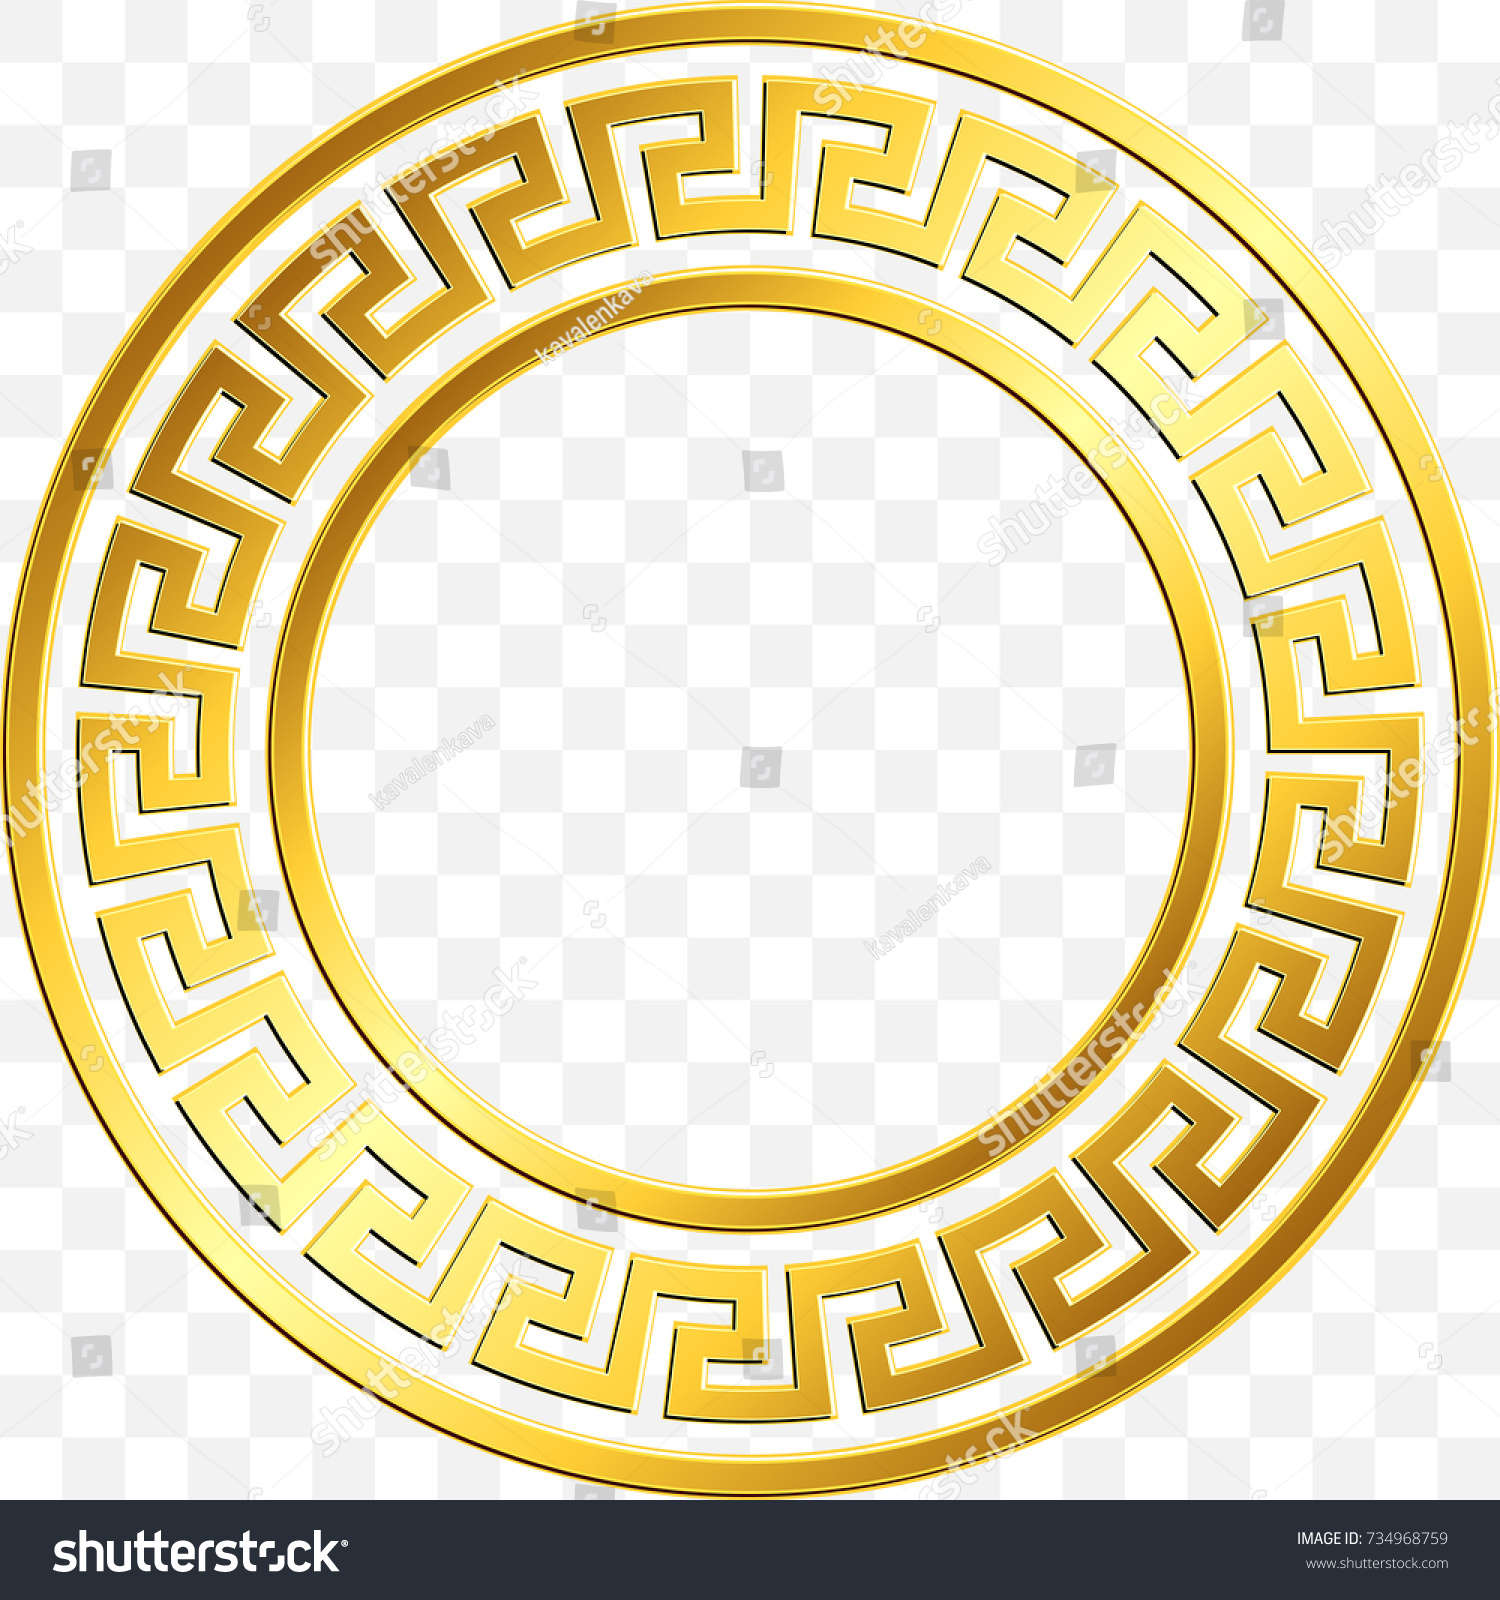 Round frame traditional vintage golden greek stock vector round frame with traditional vintage golden greek ornament meander pattern on transparent background gold biocorpaavc Image collections